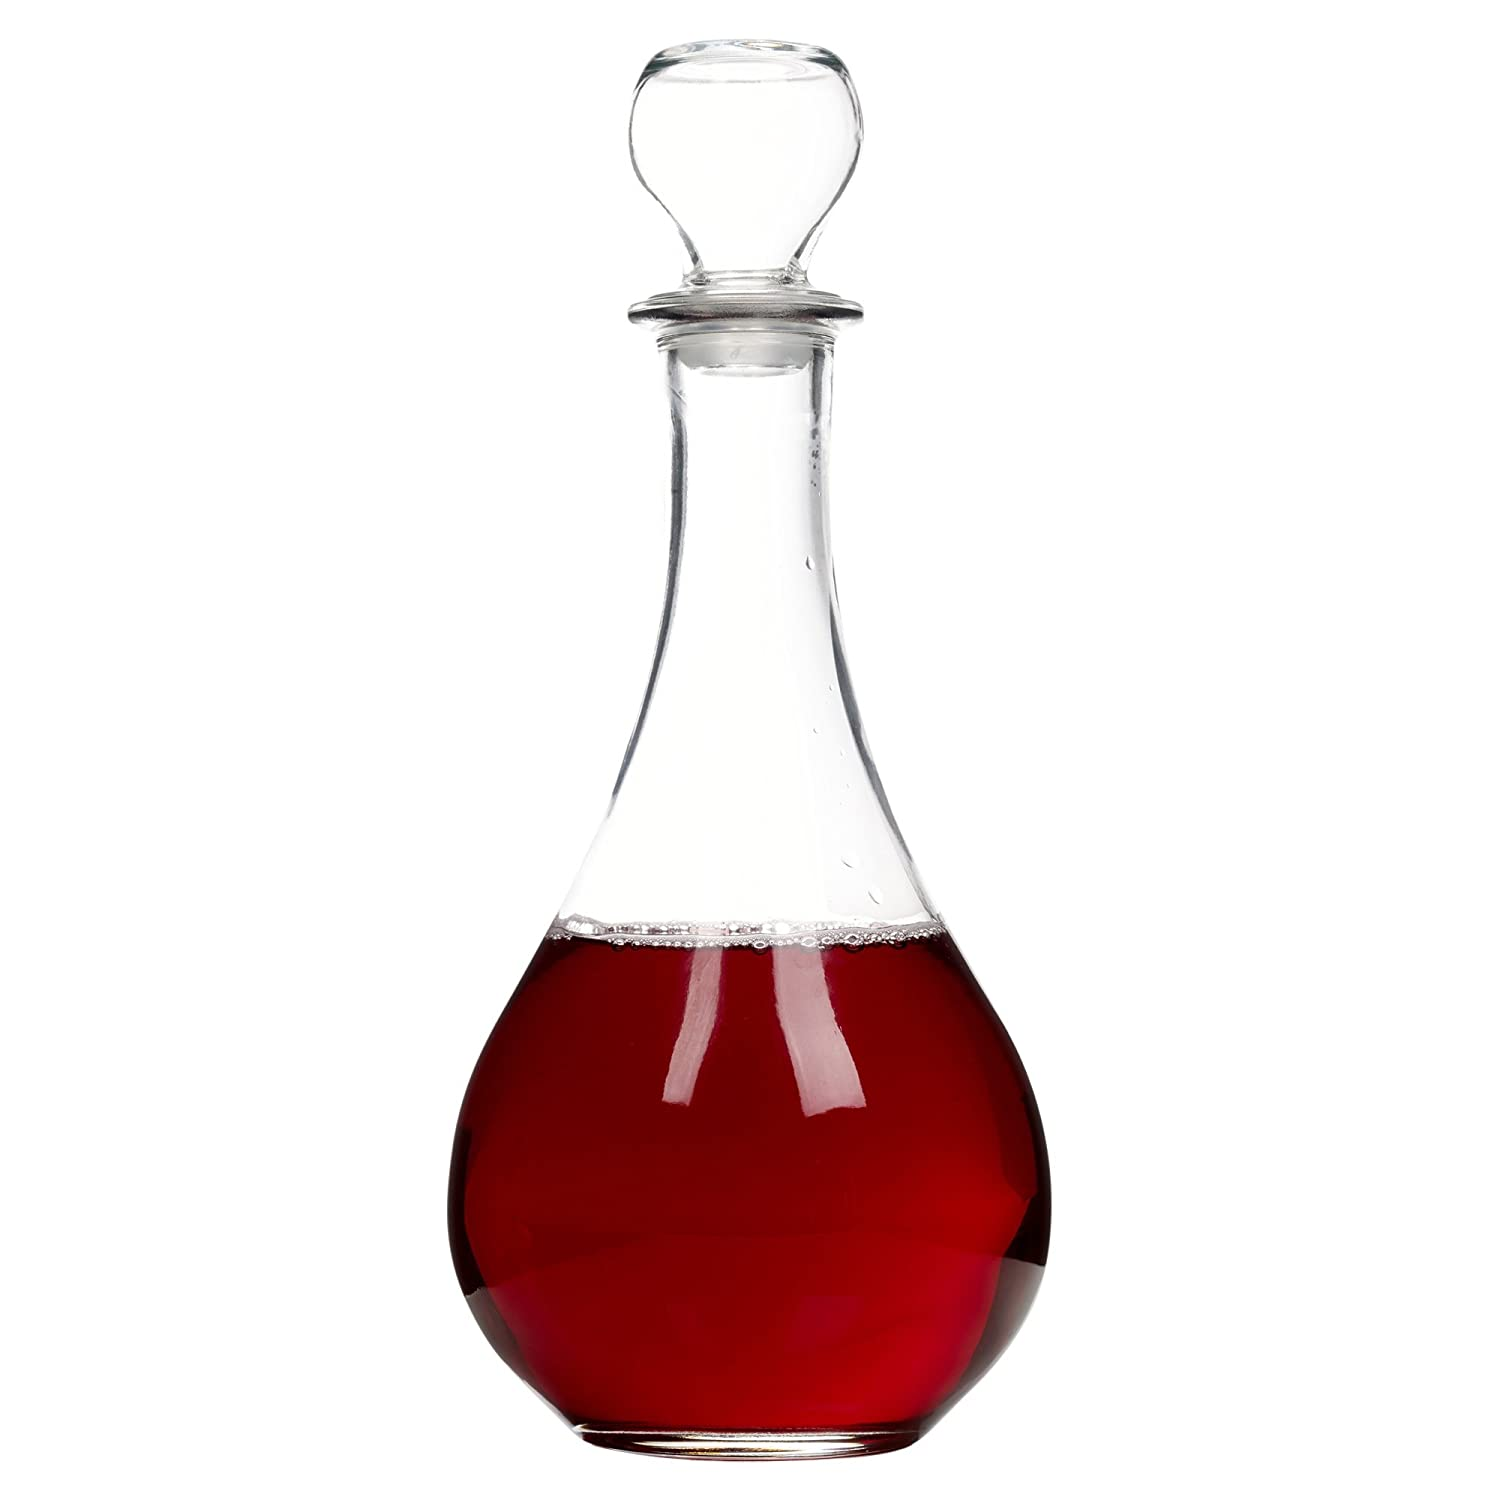 Bormioli Rocco Loto Glass Decanter for Wine Brandy Sherry Liqueur Alcohol Whisky UKASNHKTN7258